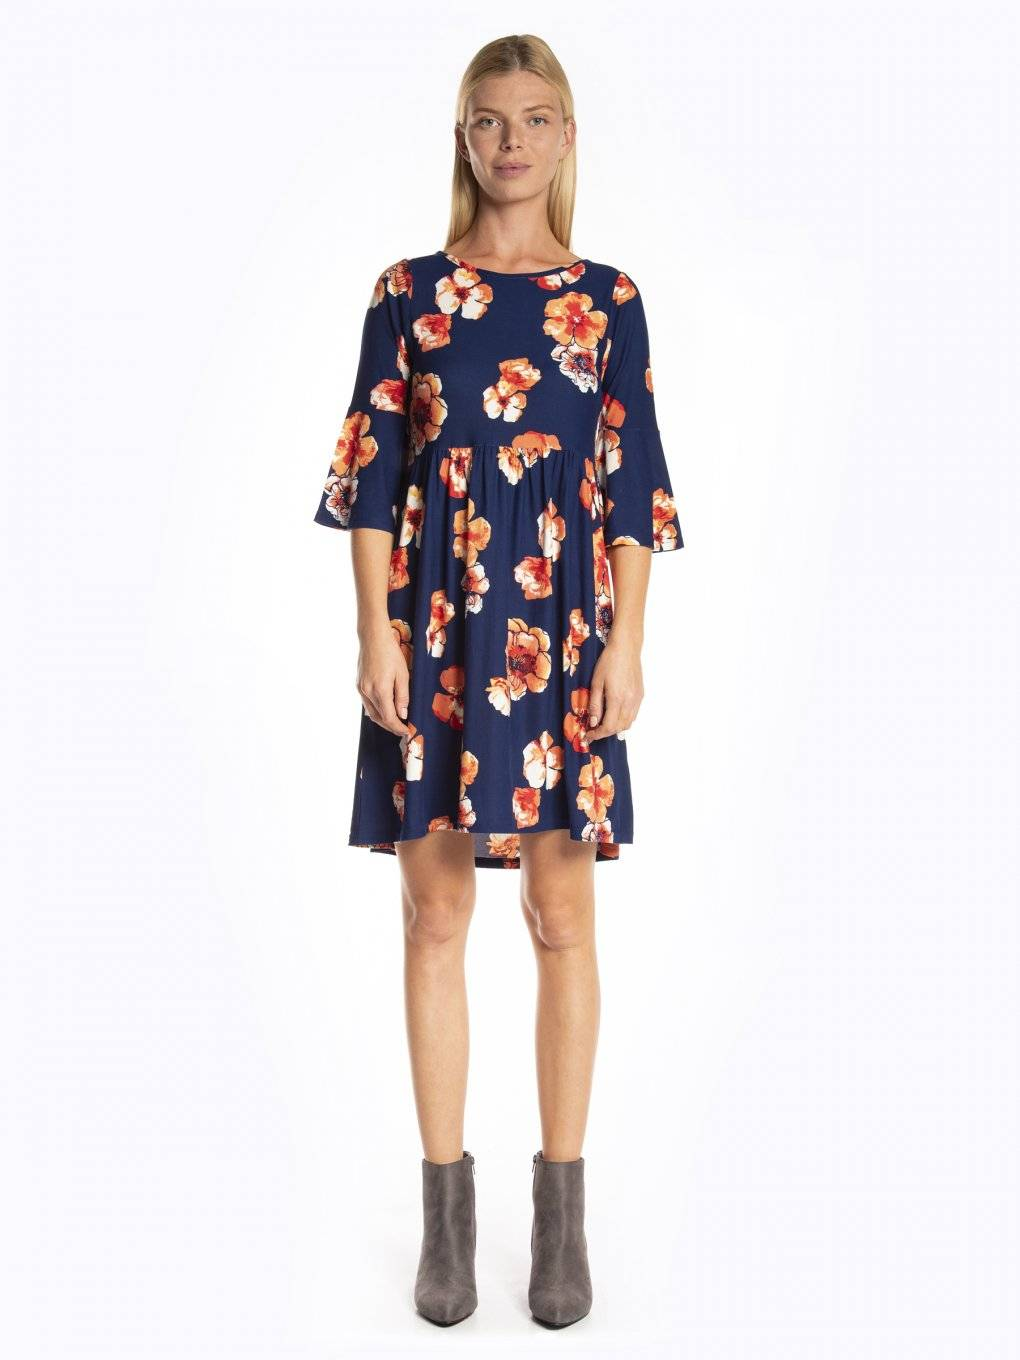 Floral print dress with bell sleeves